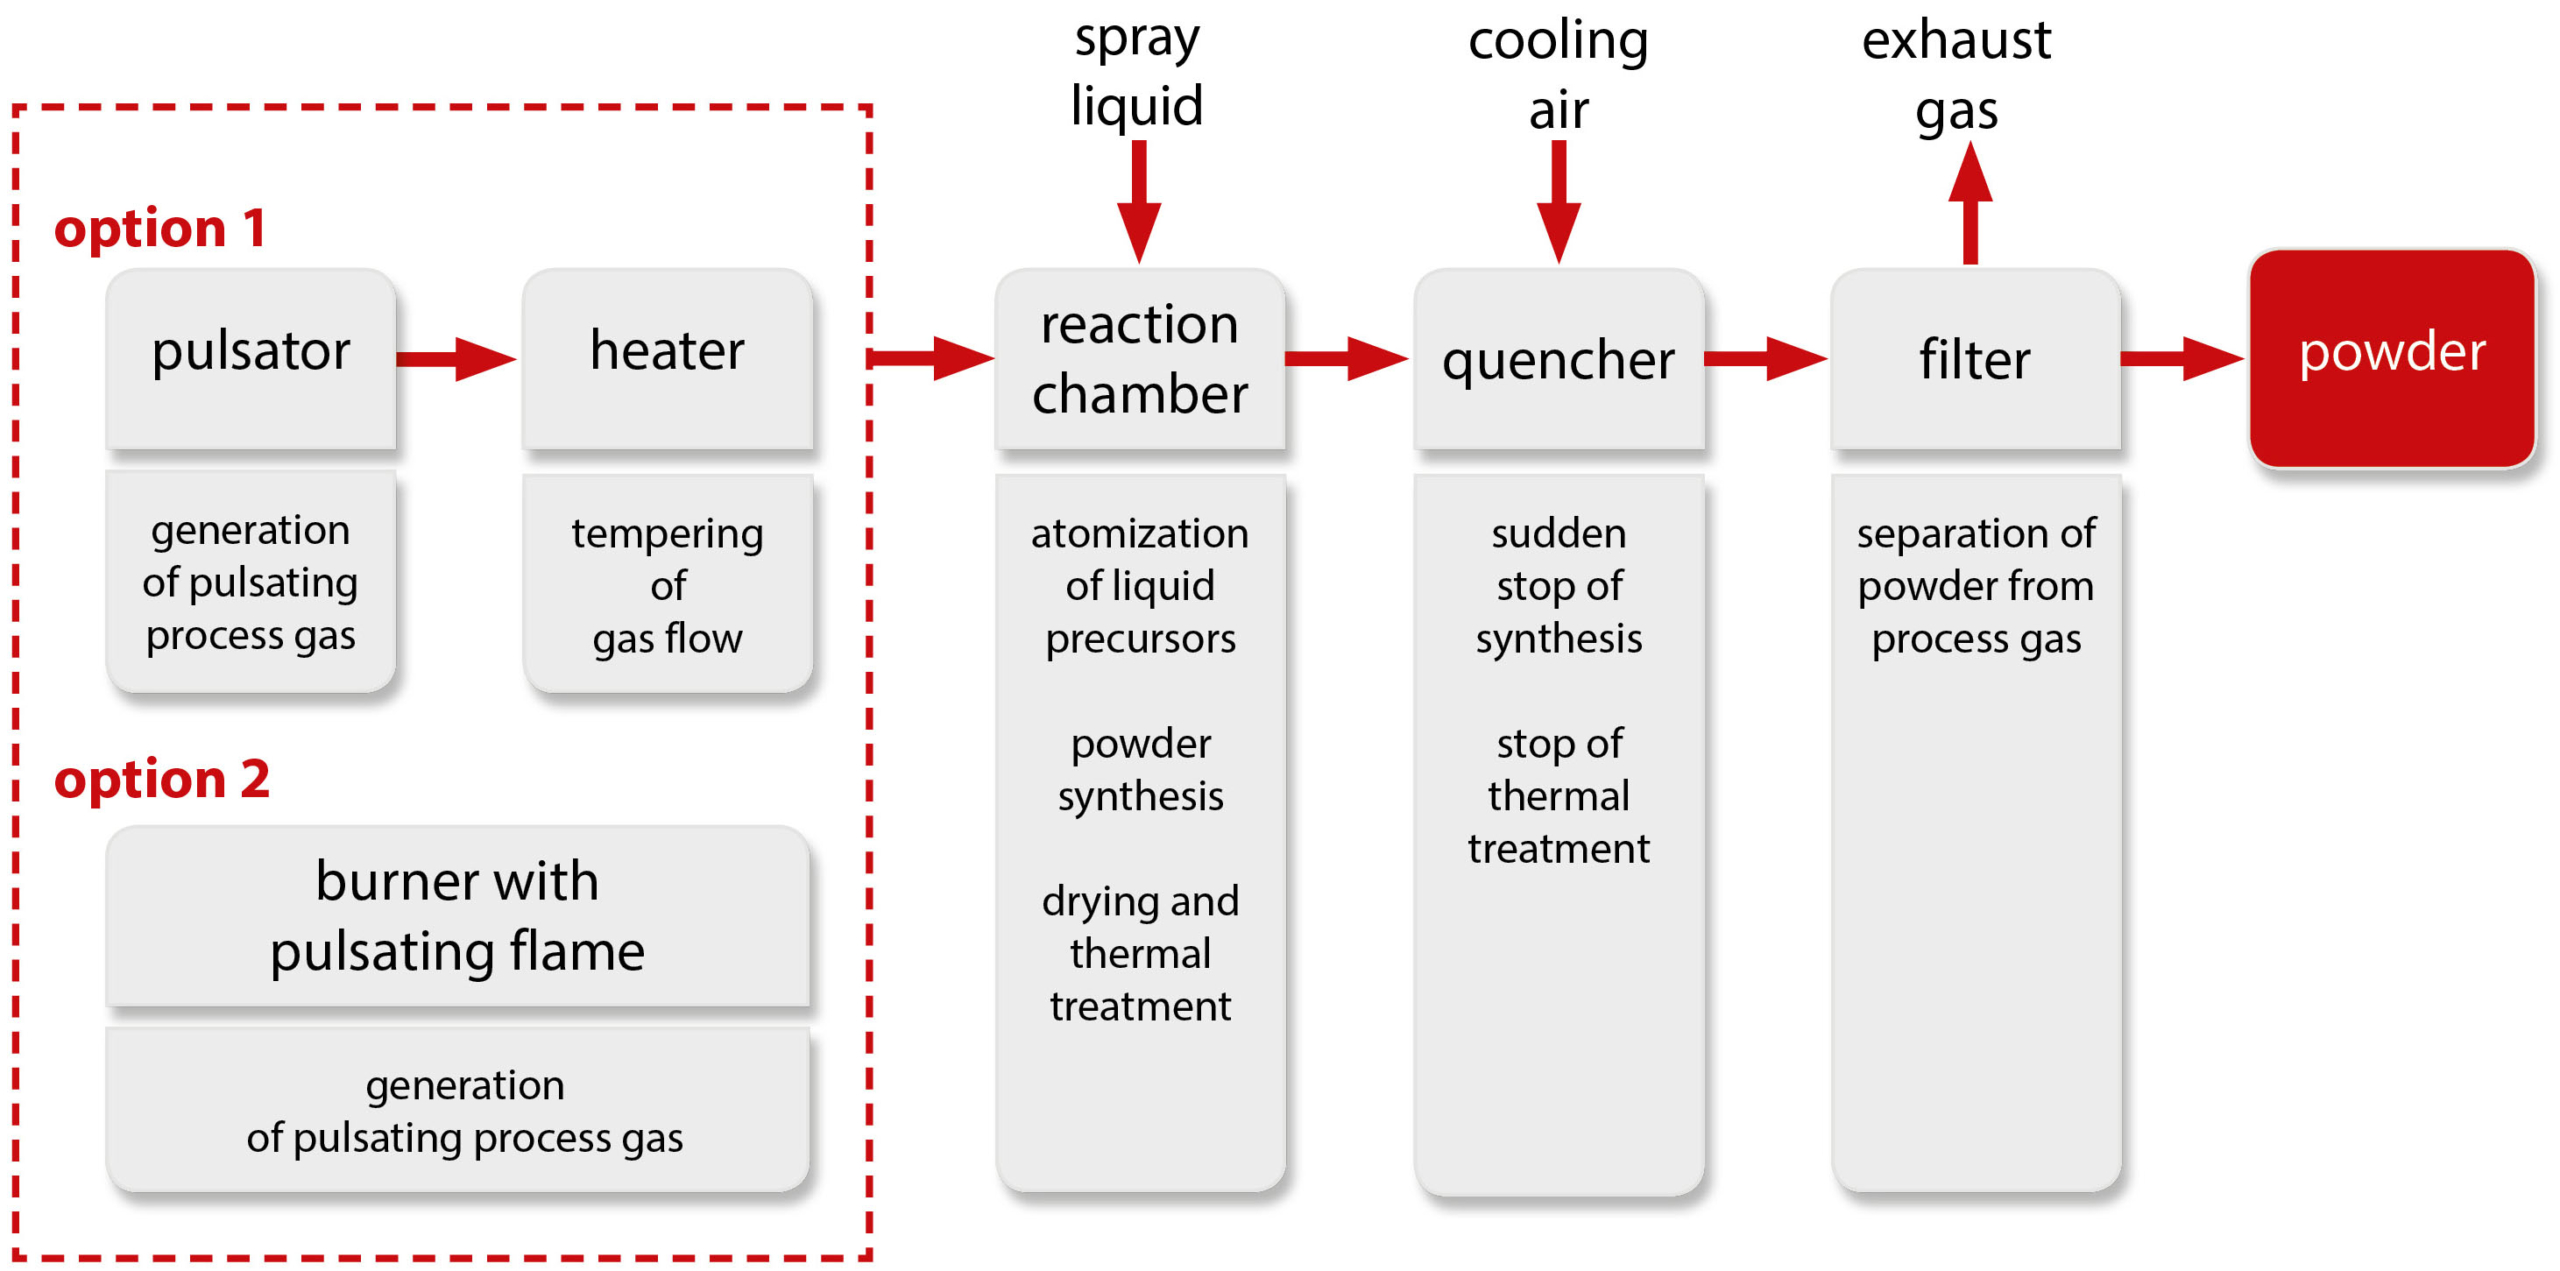 Functionality of Glatt powder synthesis in a pulsating hot gas stream